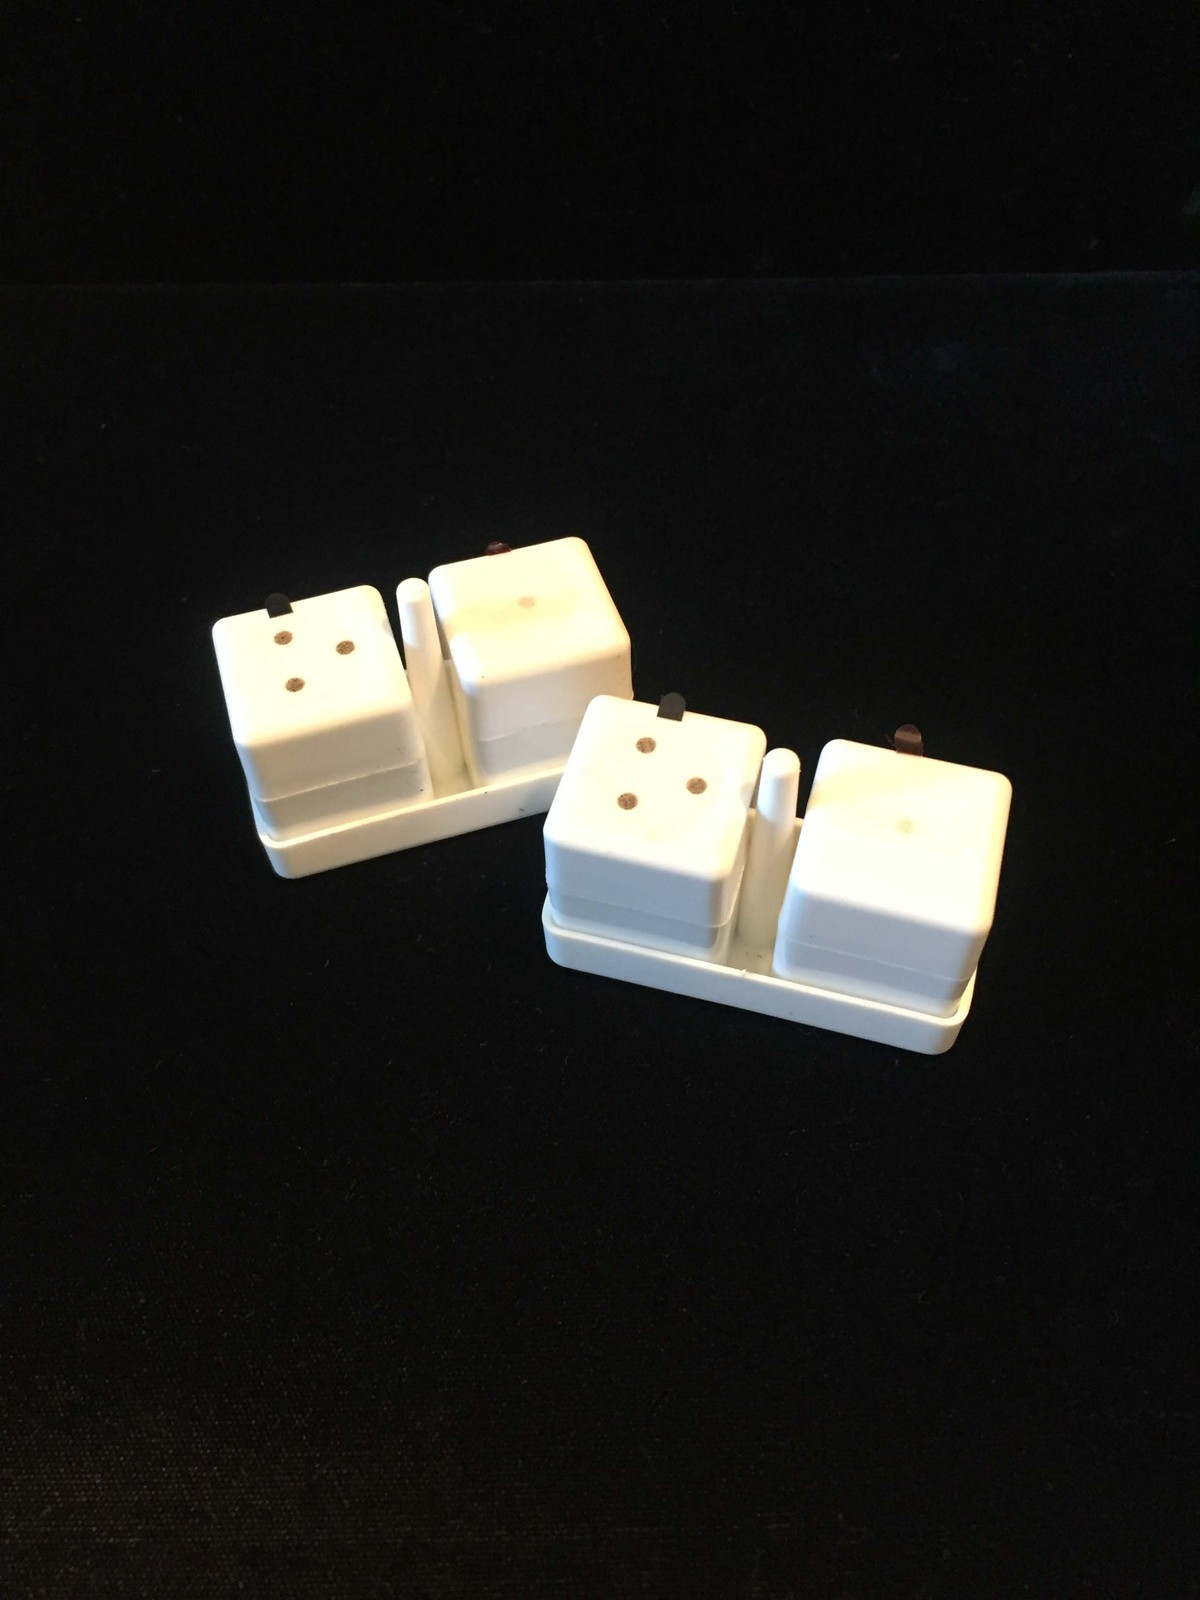 White Cube Salt/Pepper shakers - Delta Airlines First Class meal service